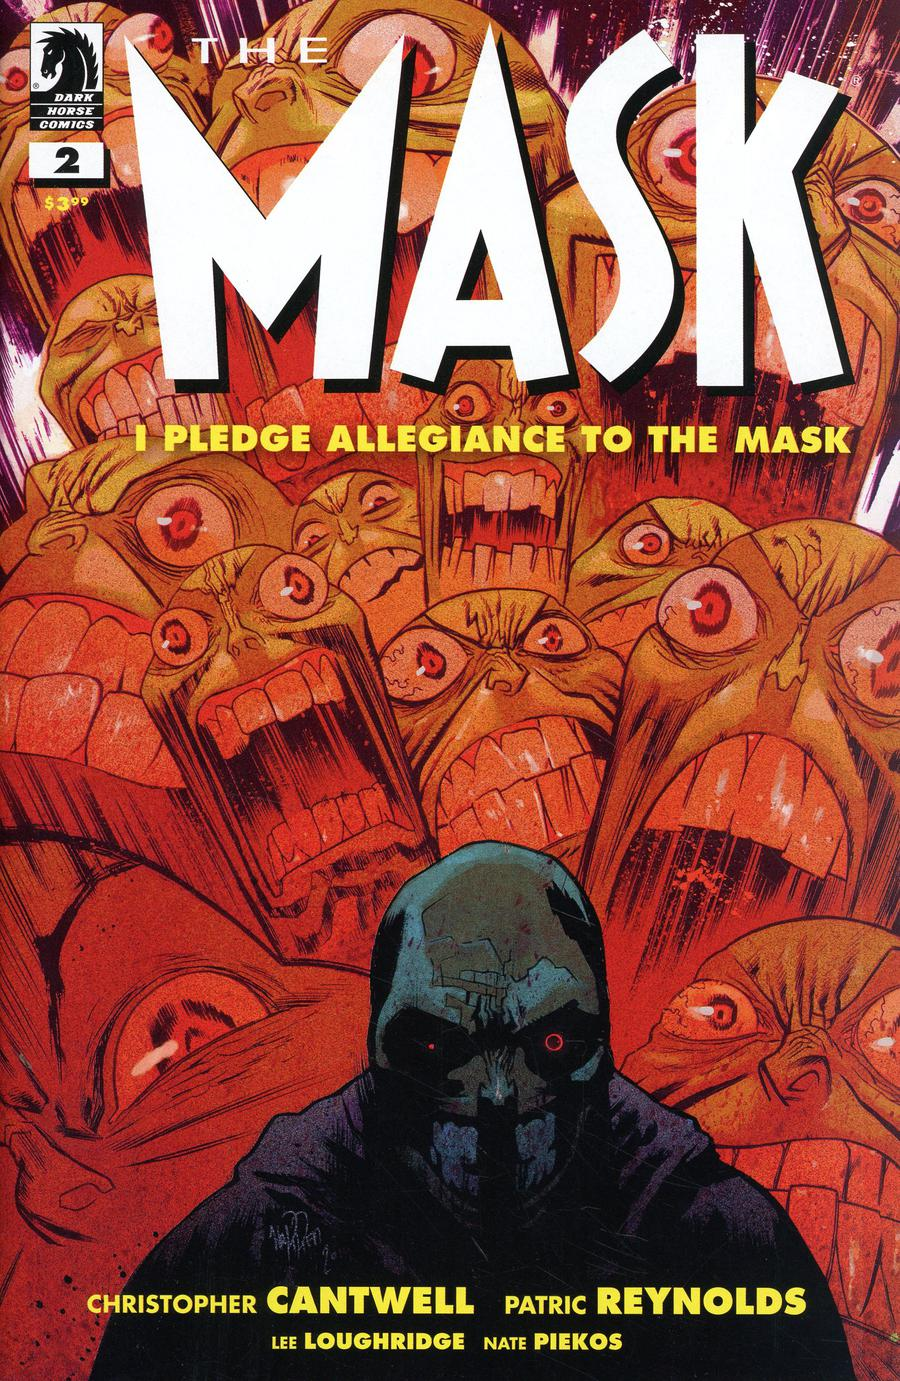 Mask I Pledge Allegiance To The Mask #2 Cover B Variant James Harren Cover